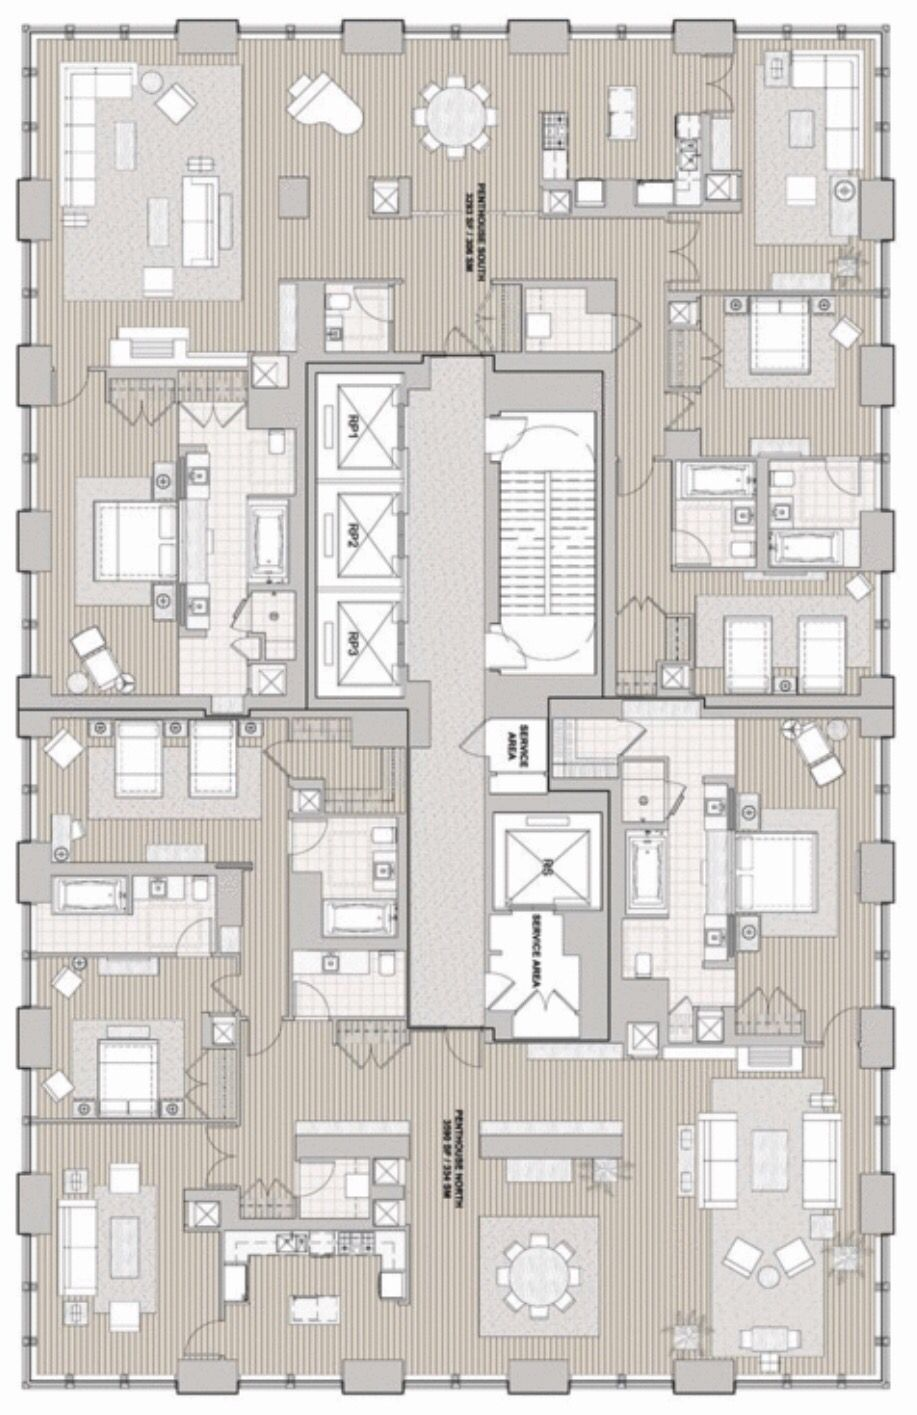 Condominiums Condominium Plan Hotel Floor Plan Condominium Architecture